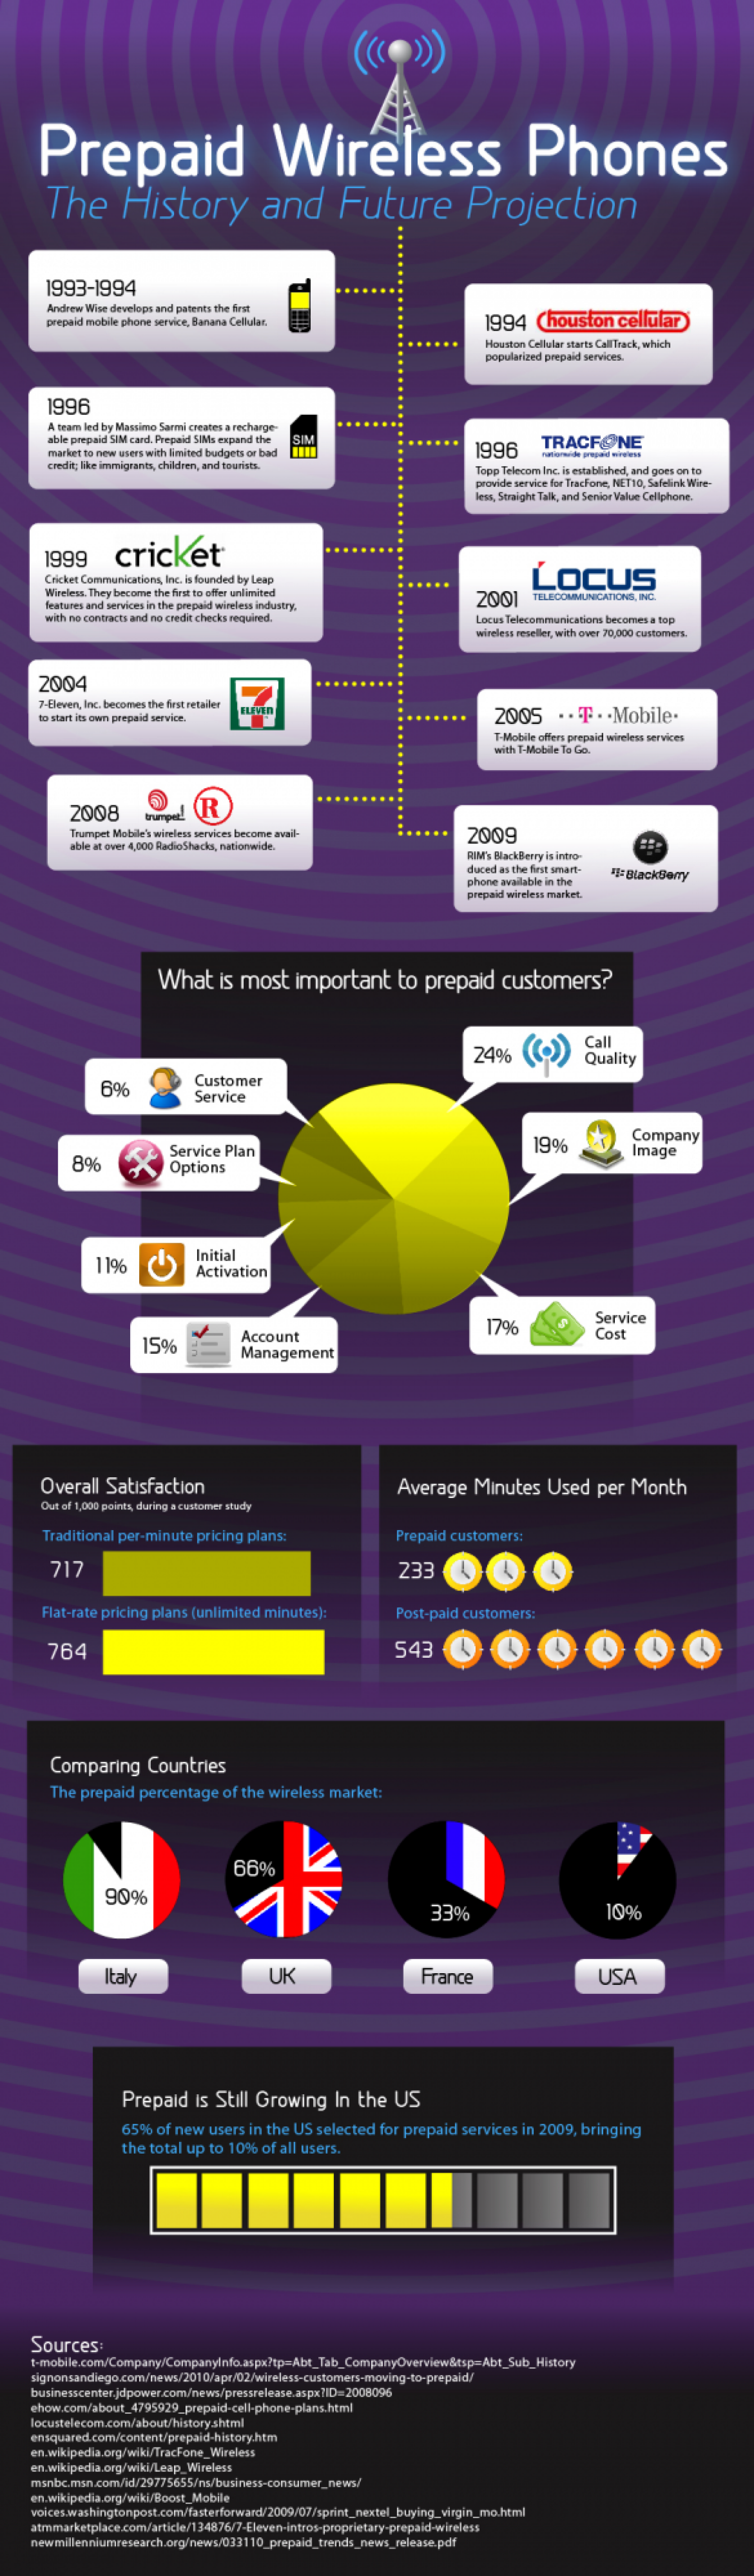 Prepaid Wireless Phones: The History and Future Projection Infographic